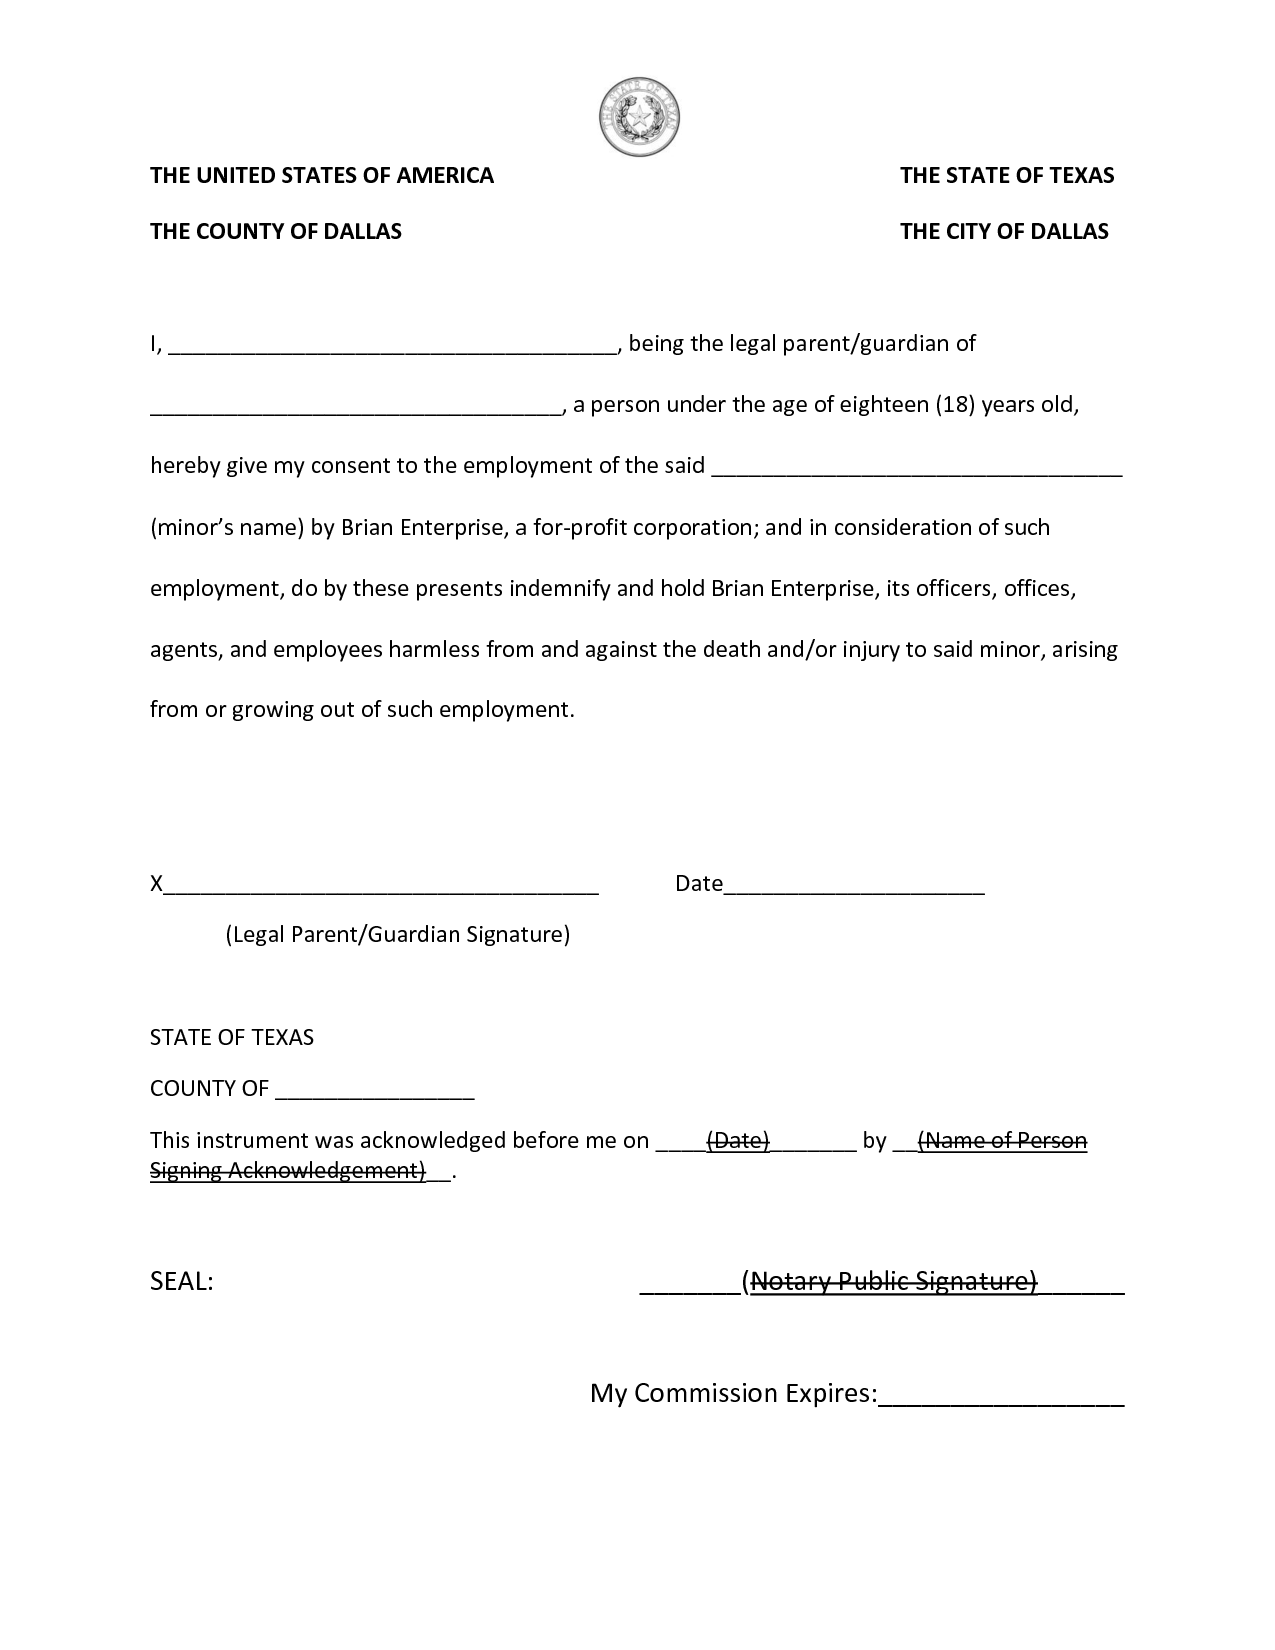 Texas Notary Acknowledgement Forms